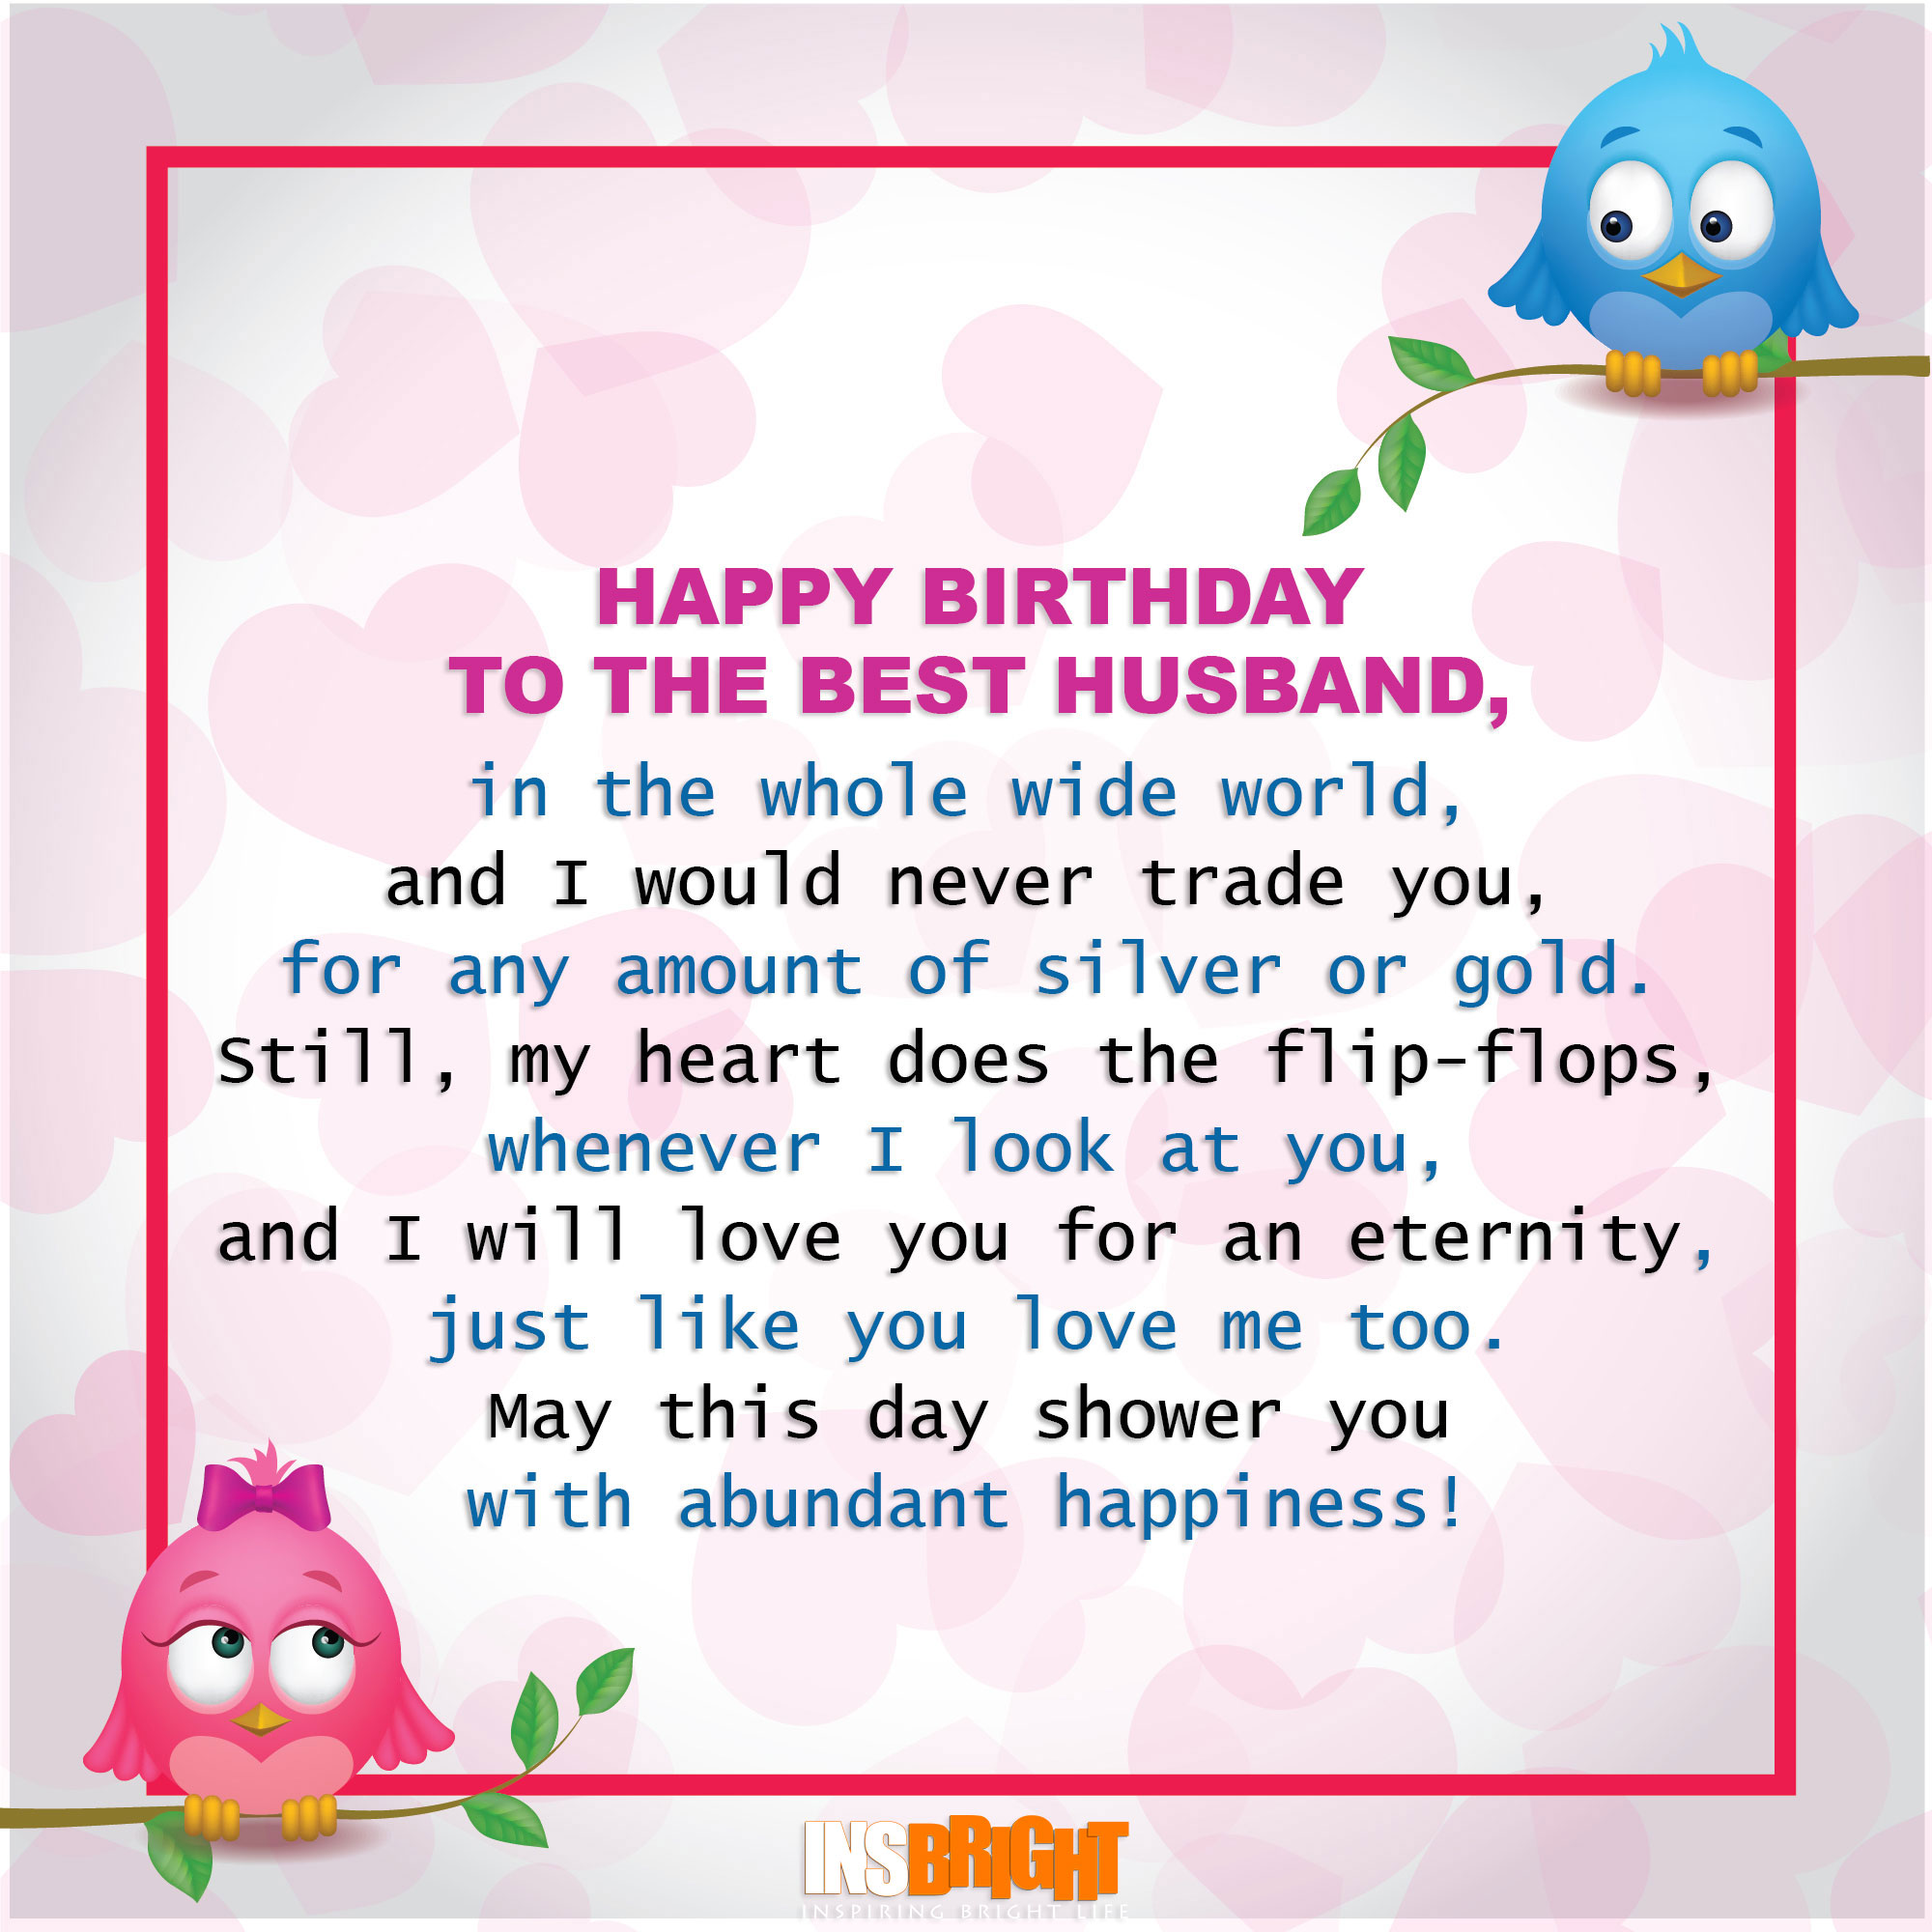 Best Birthday Quotes For Wife From Husband: Romantic Happy Birthday Poems For Husband From Wife